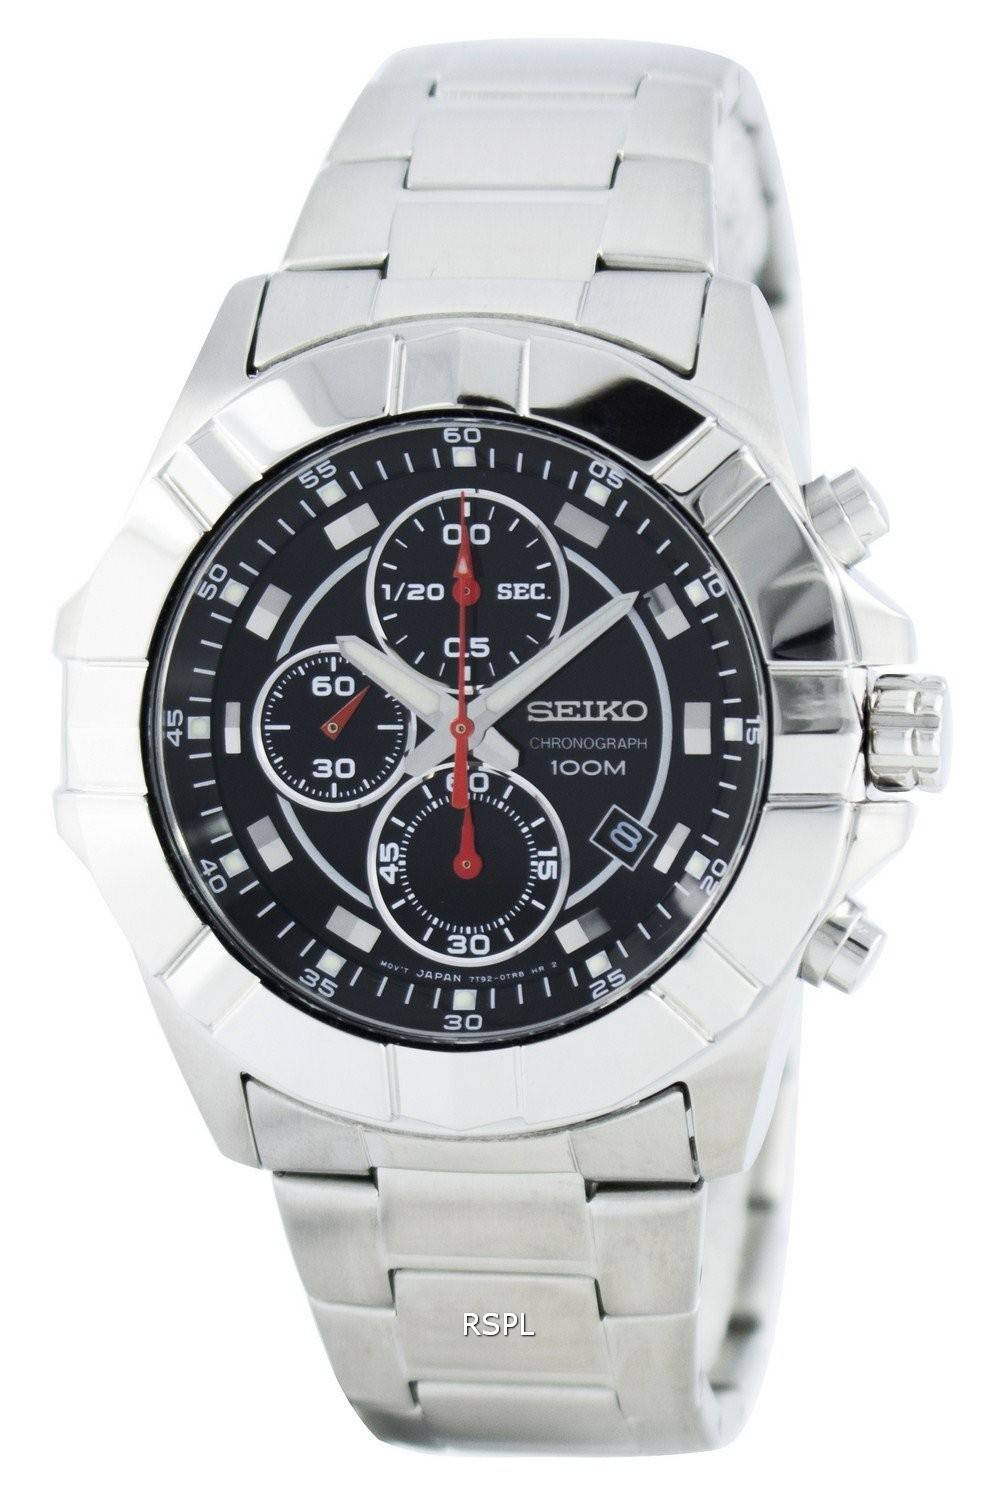 Seiko Lord Quartz Chronograph SNDD73 SNDD73P1 SNDD73P Men s Watch ... 74399b297d3